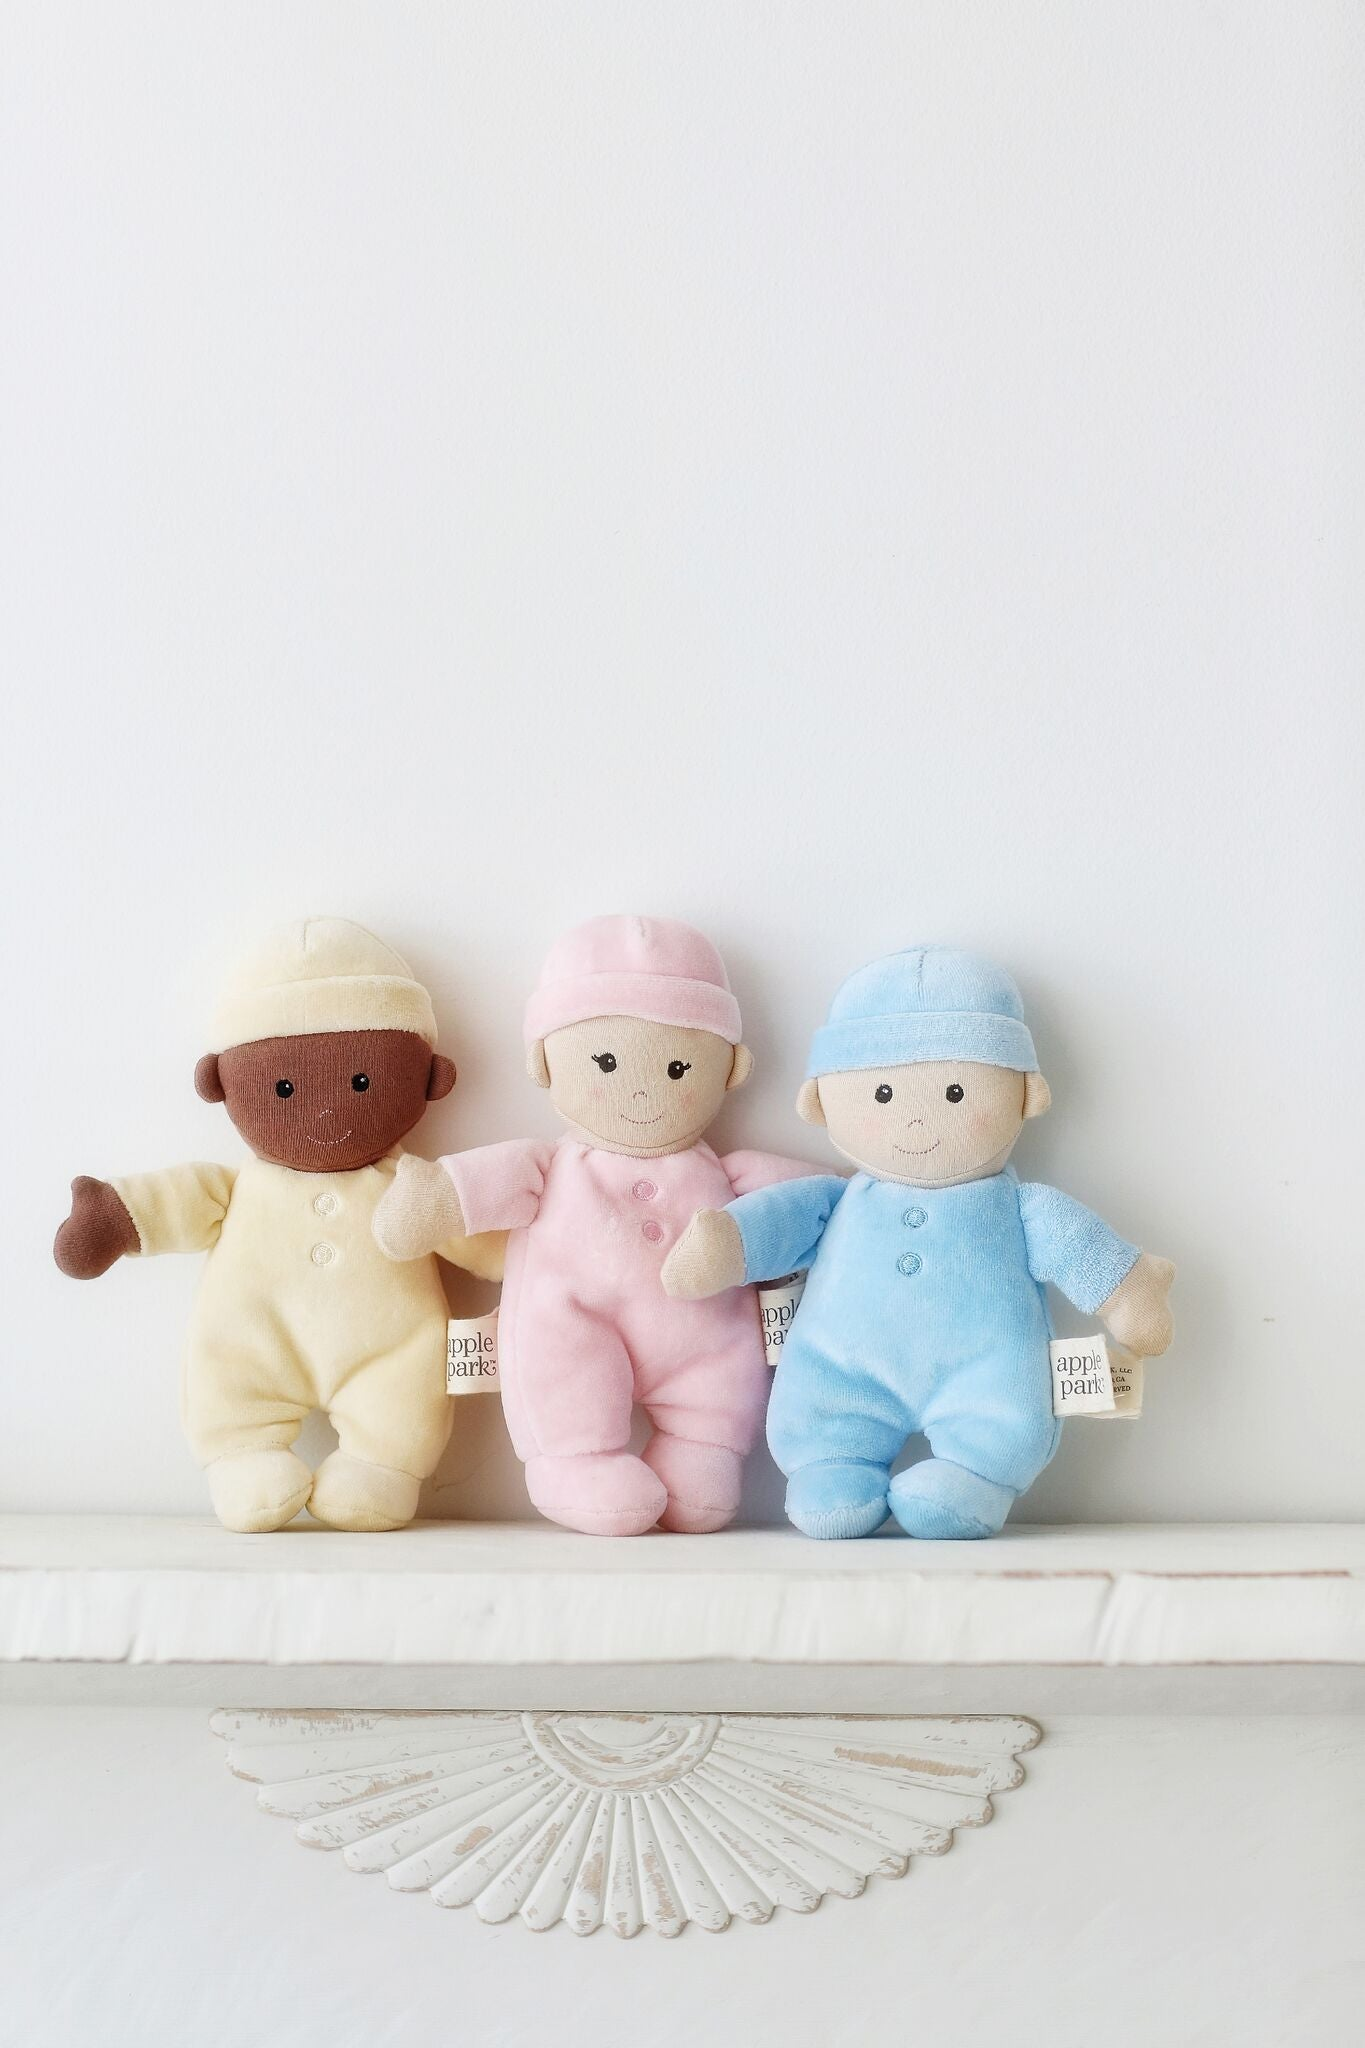 Apple Park First Baby Doll Blue. Cuddly soft toy.